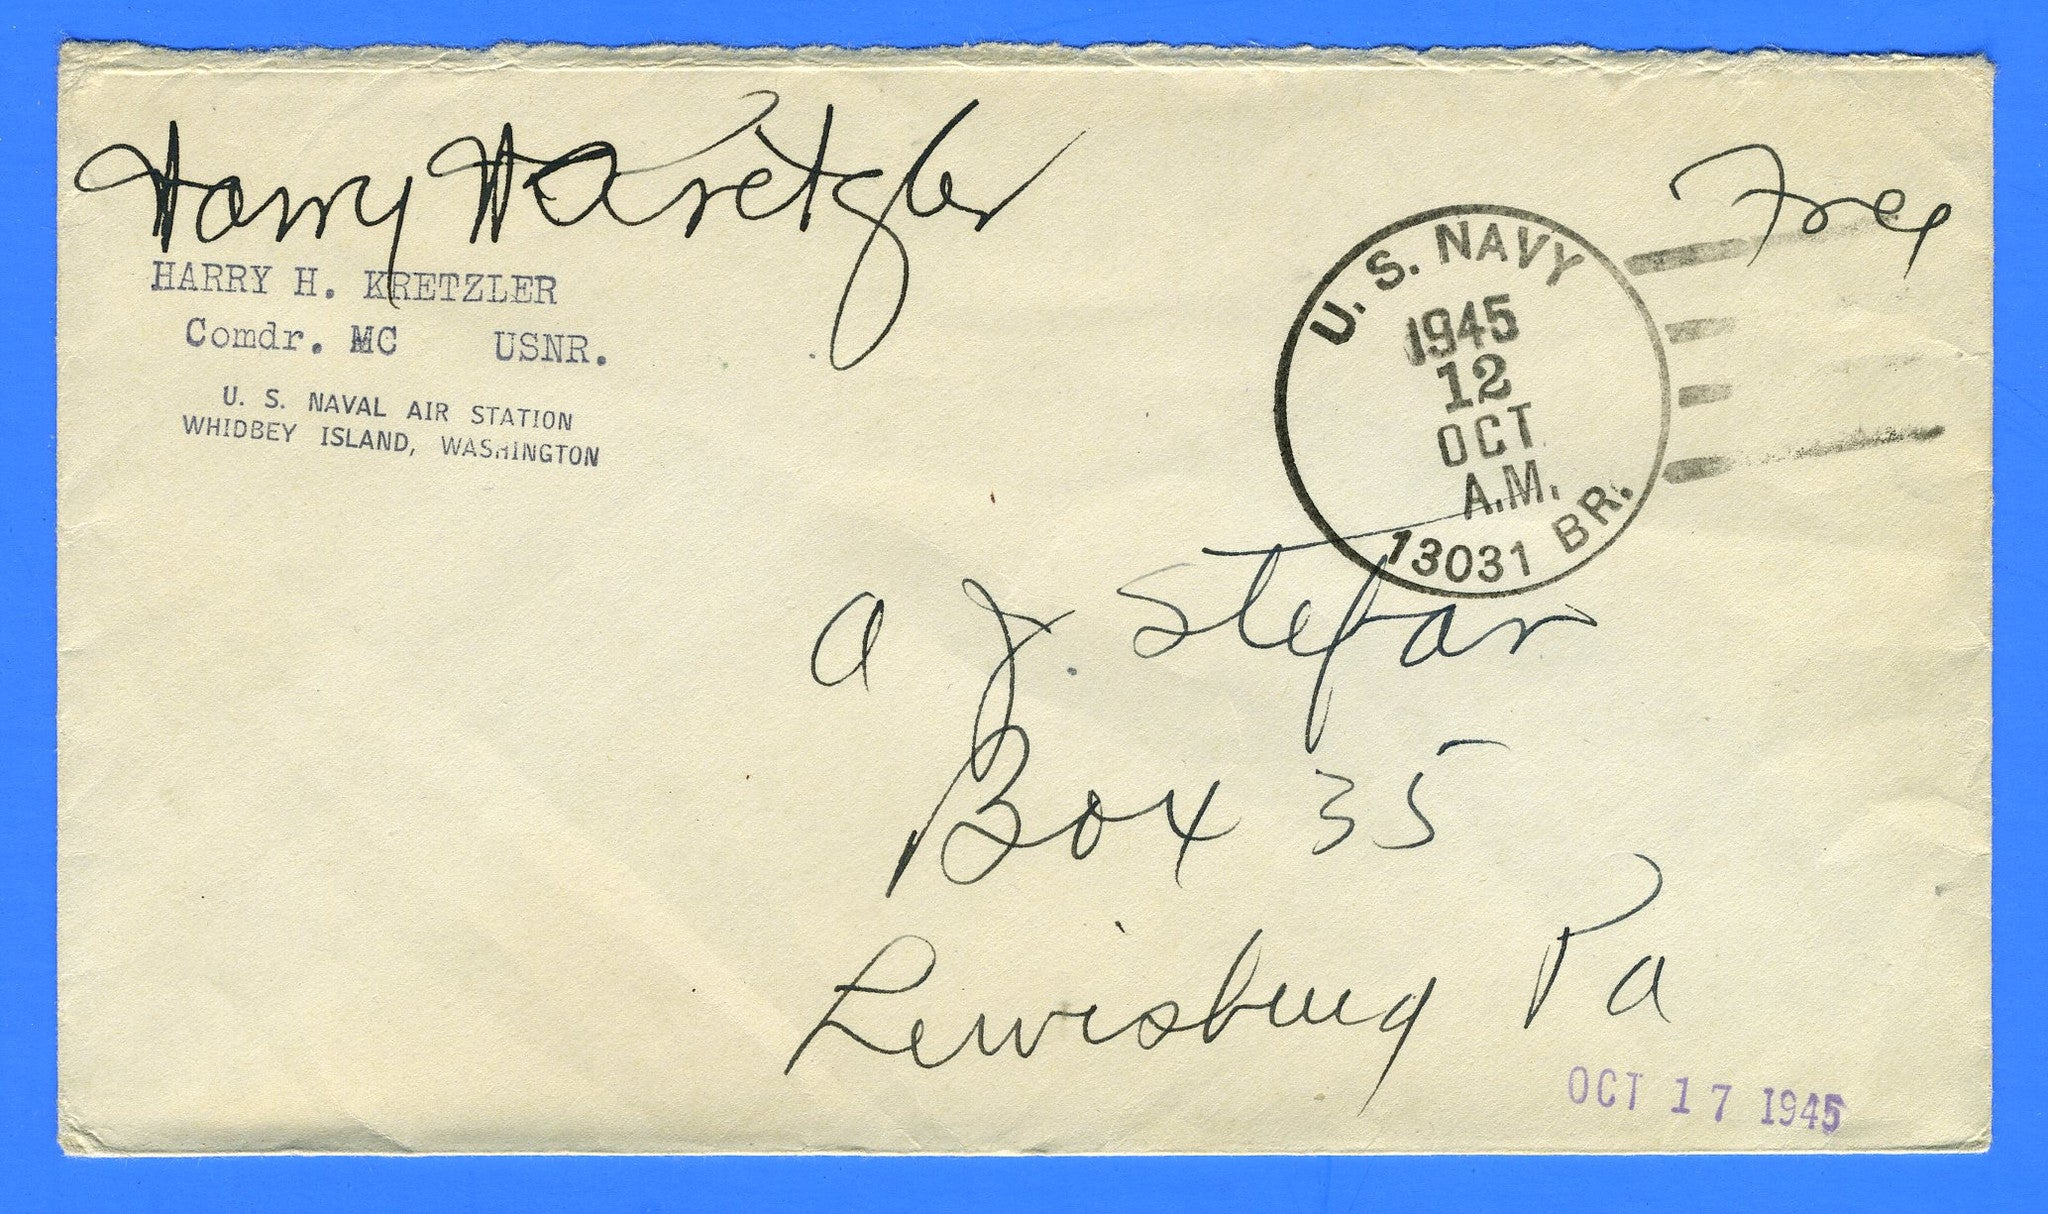 "Commander Signed ""Free"" Mail U.S. Navy 13031 Br. Naval Air Station, Whidbey Island, Washington October 12, 1945"